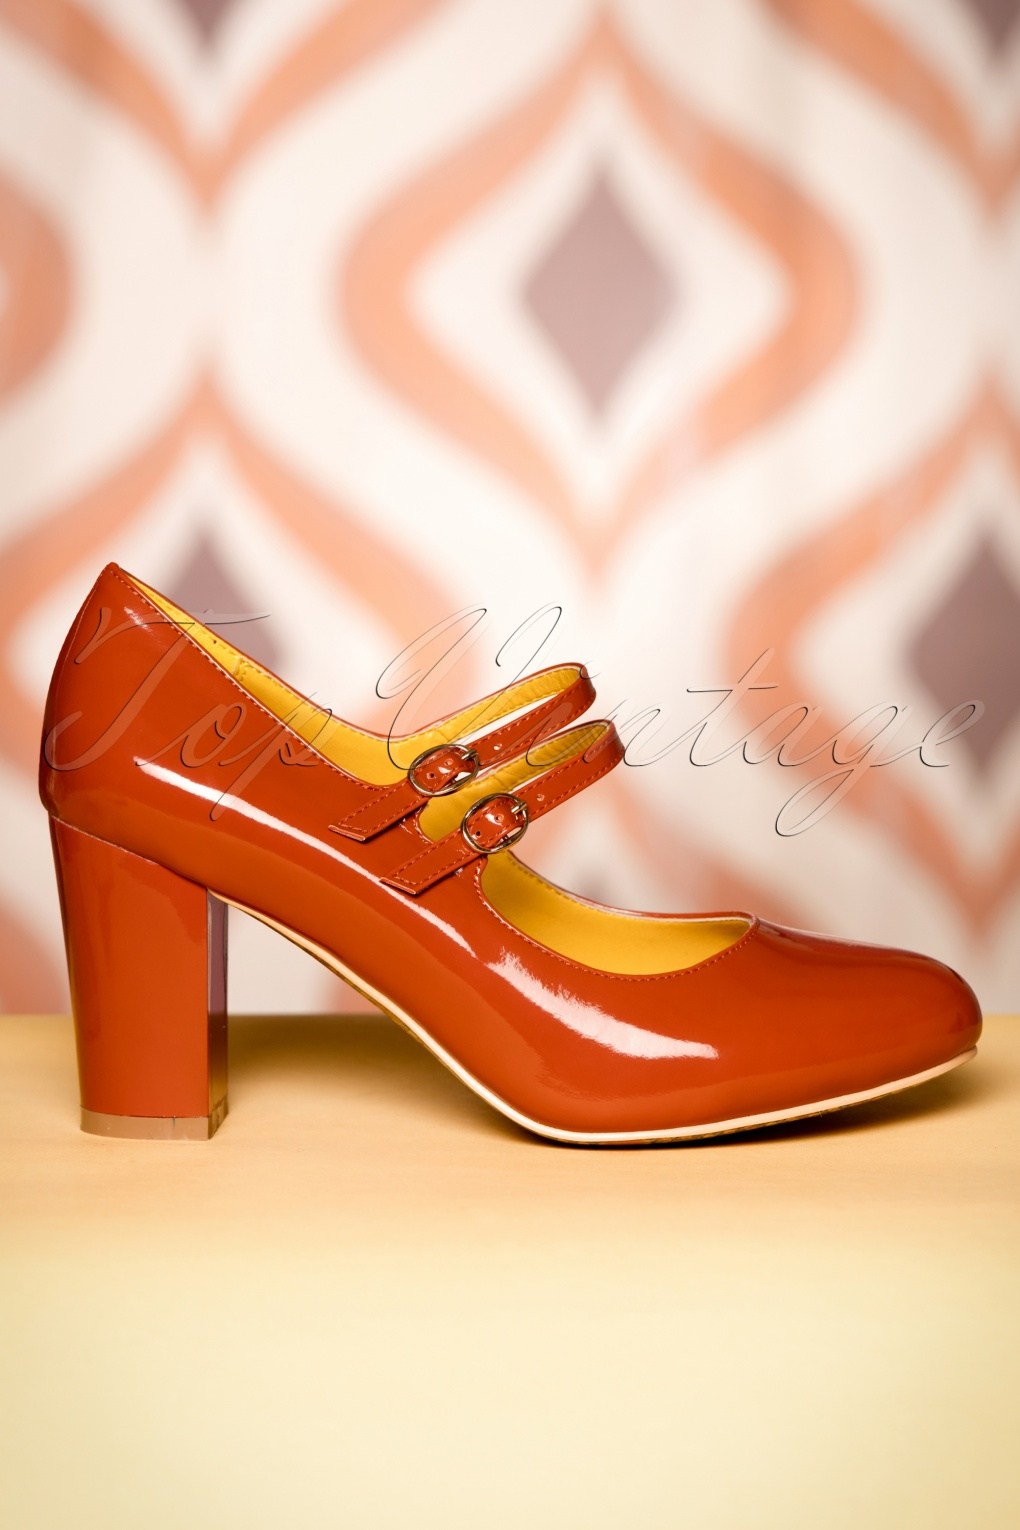 1960s Style Dresses, Clothing, Shoes UK 60s Golden Years Lacquer Pumps in Ginger £60.92 AT vintagedancer.com